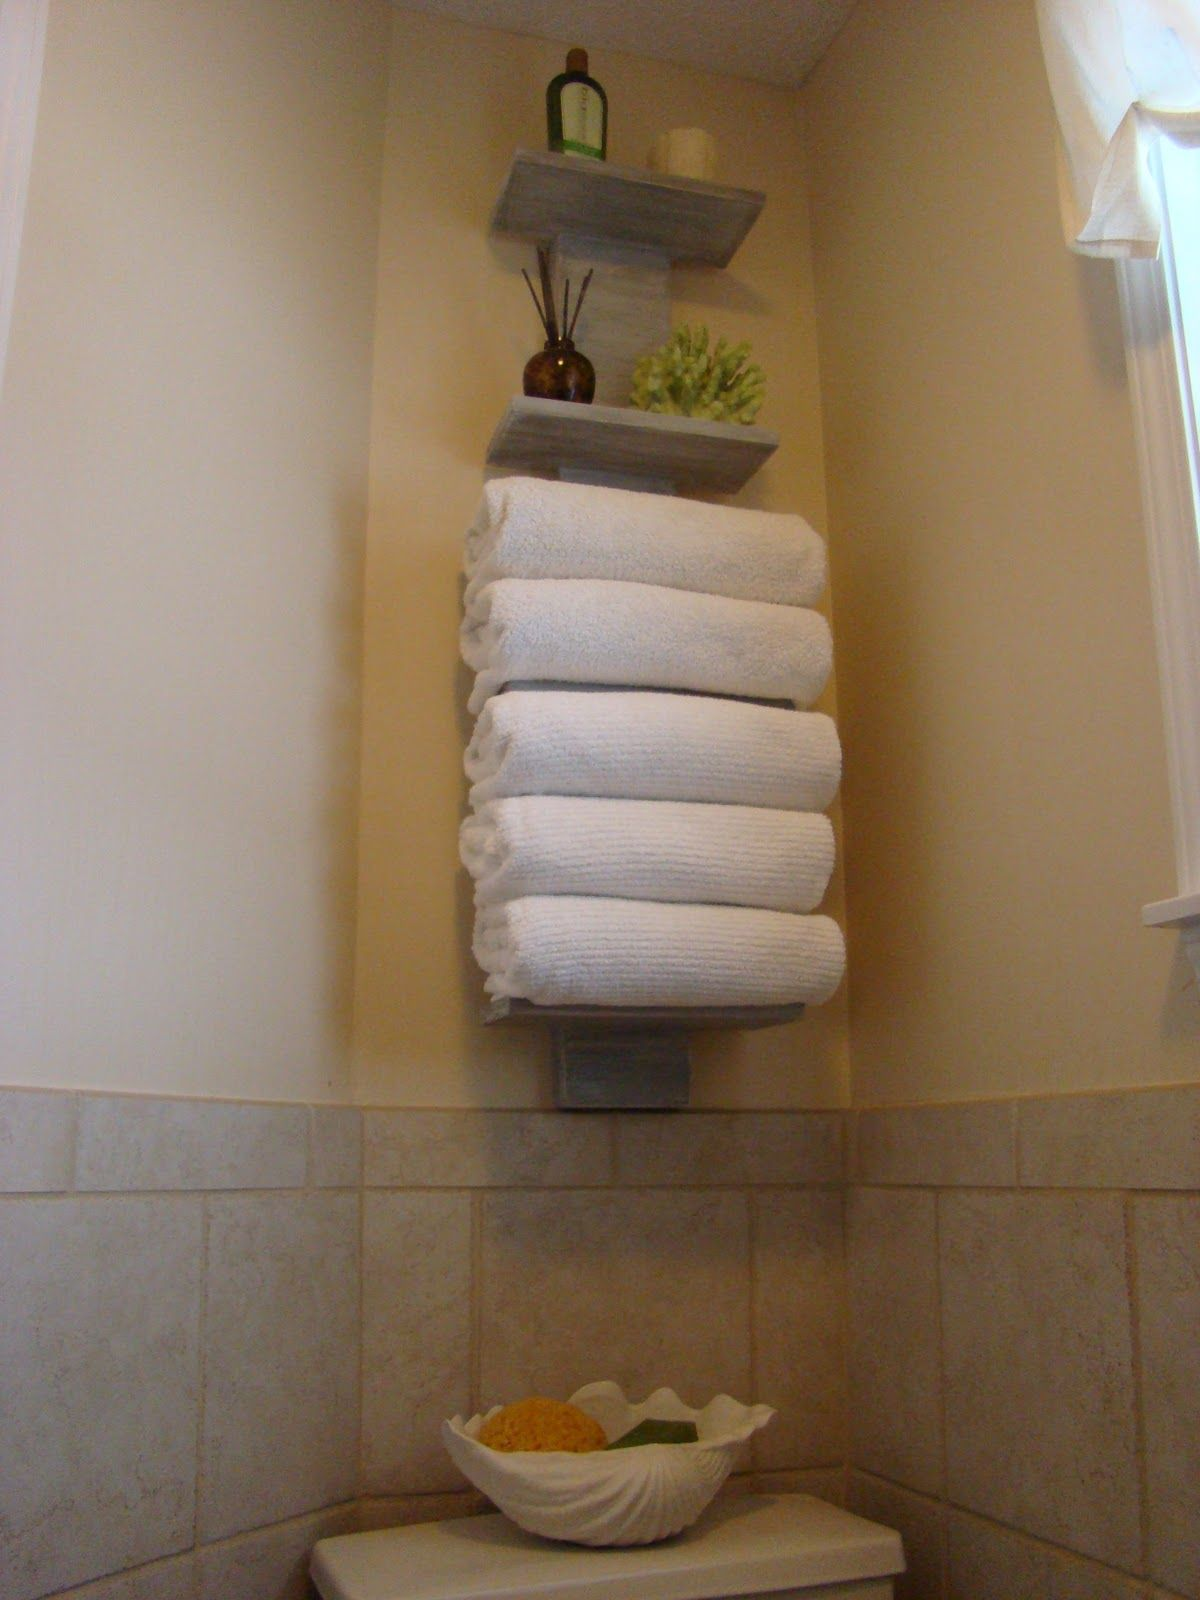 This Could Be Very Cutealternate Towels With Knickknacks For - Cute bath towel sets for small bathroom ideas